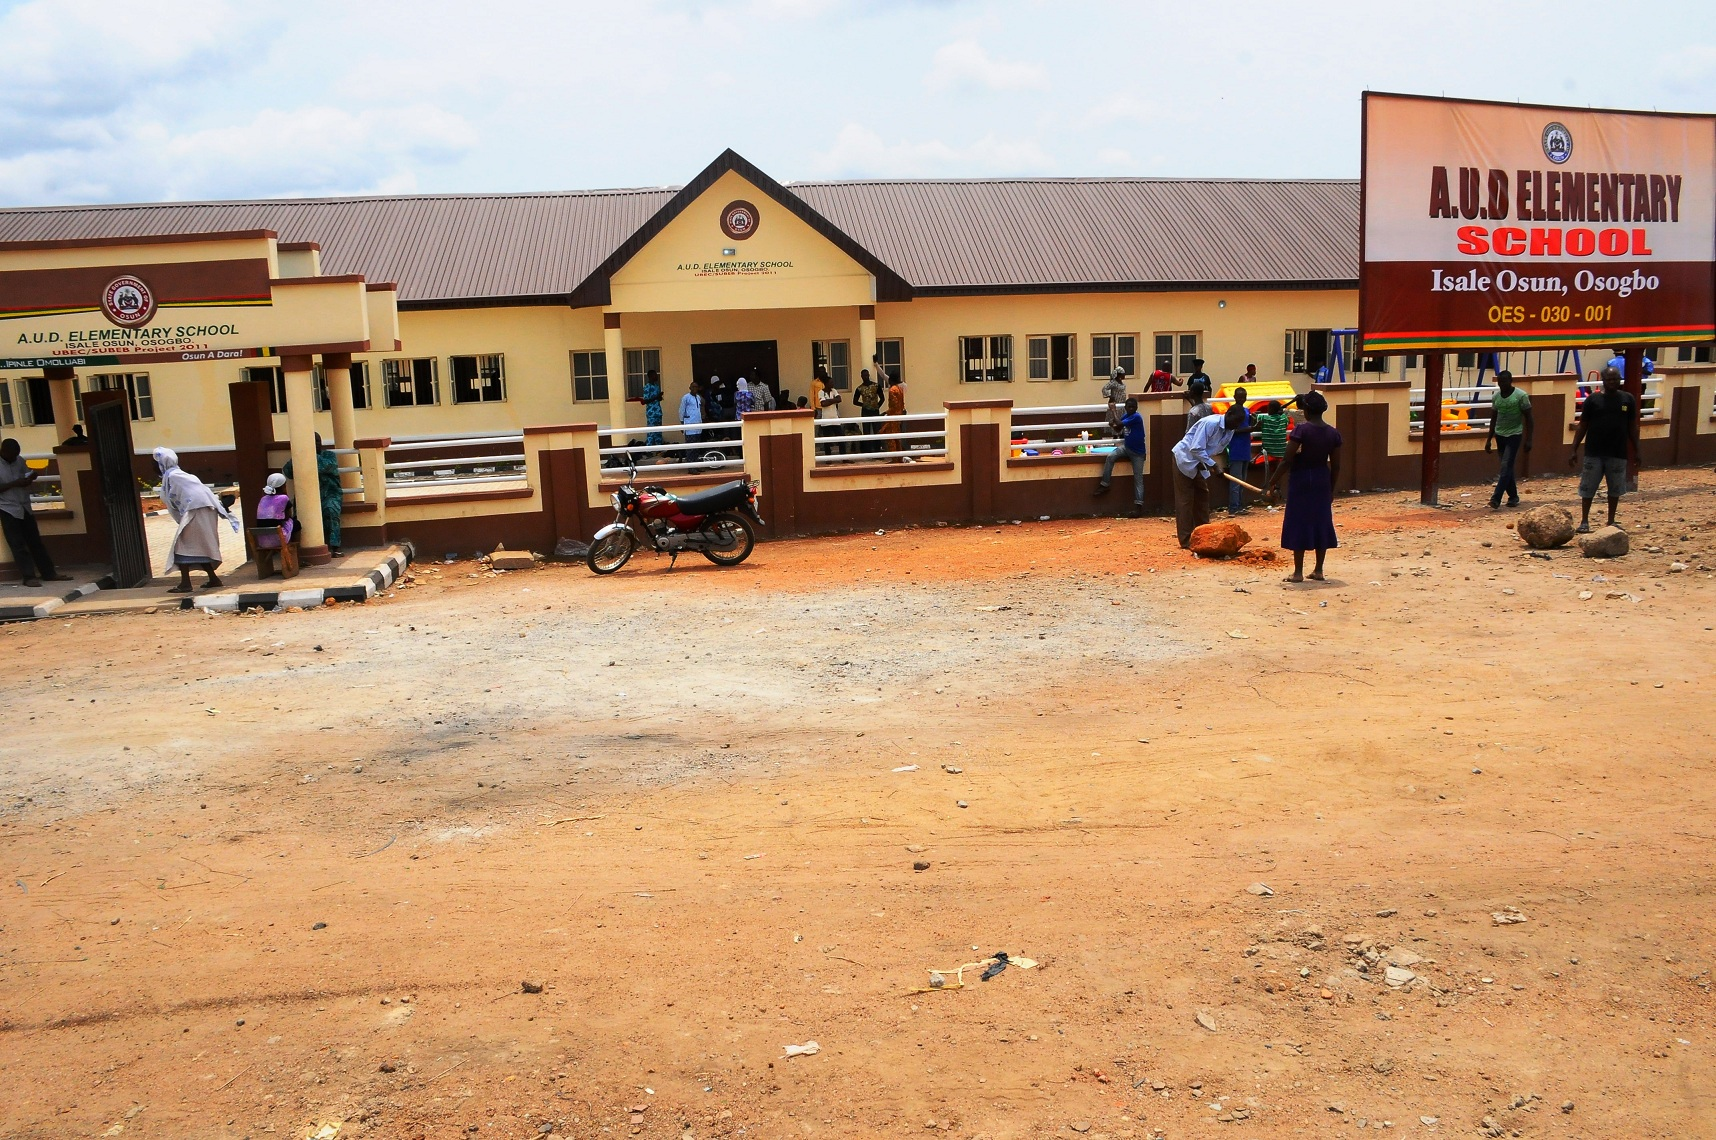 Other pictures shows the area views equippements of just commissioned Ansar-Ul-Deen Government Elementary School. Isale Osun, Osogbo on Thursday 13th of March, 2014